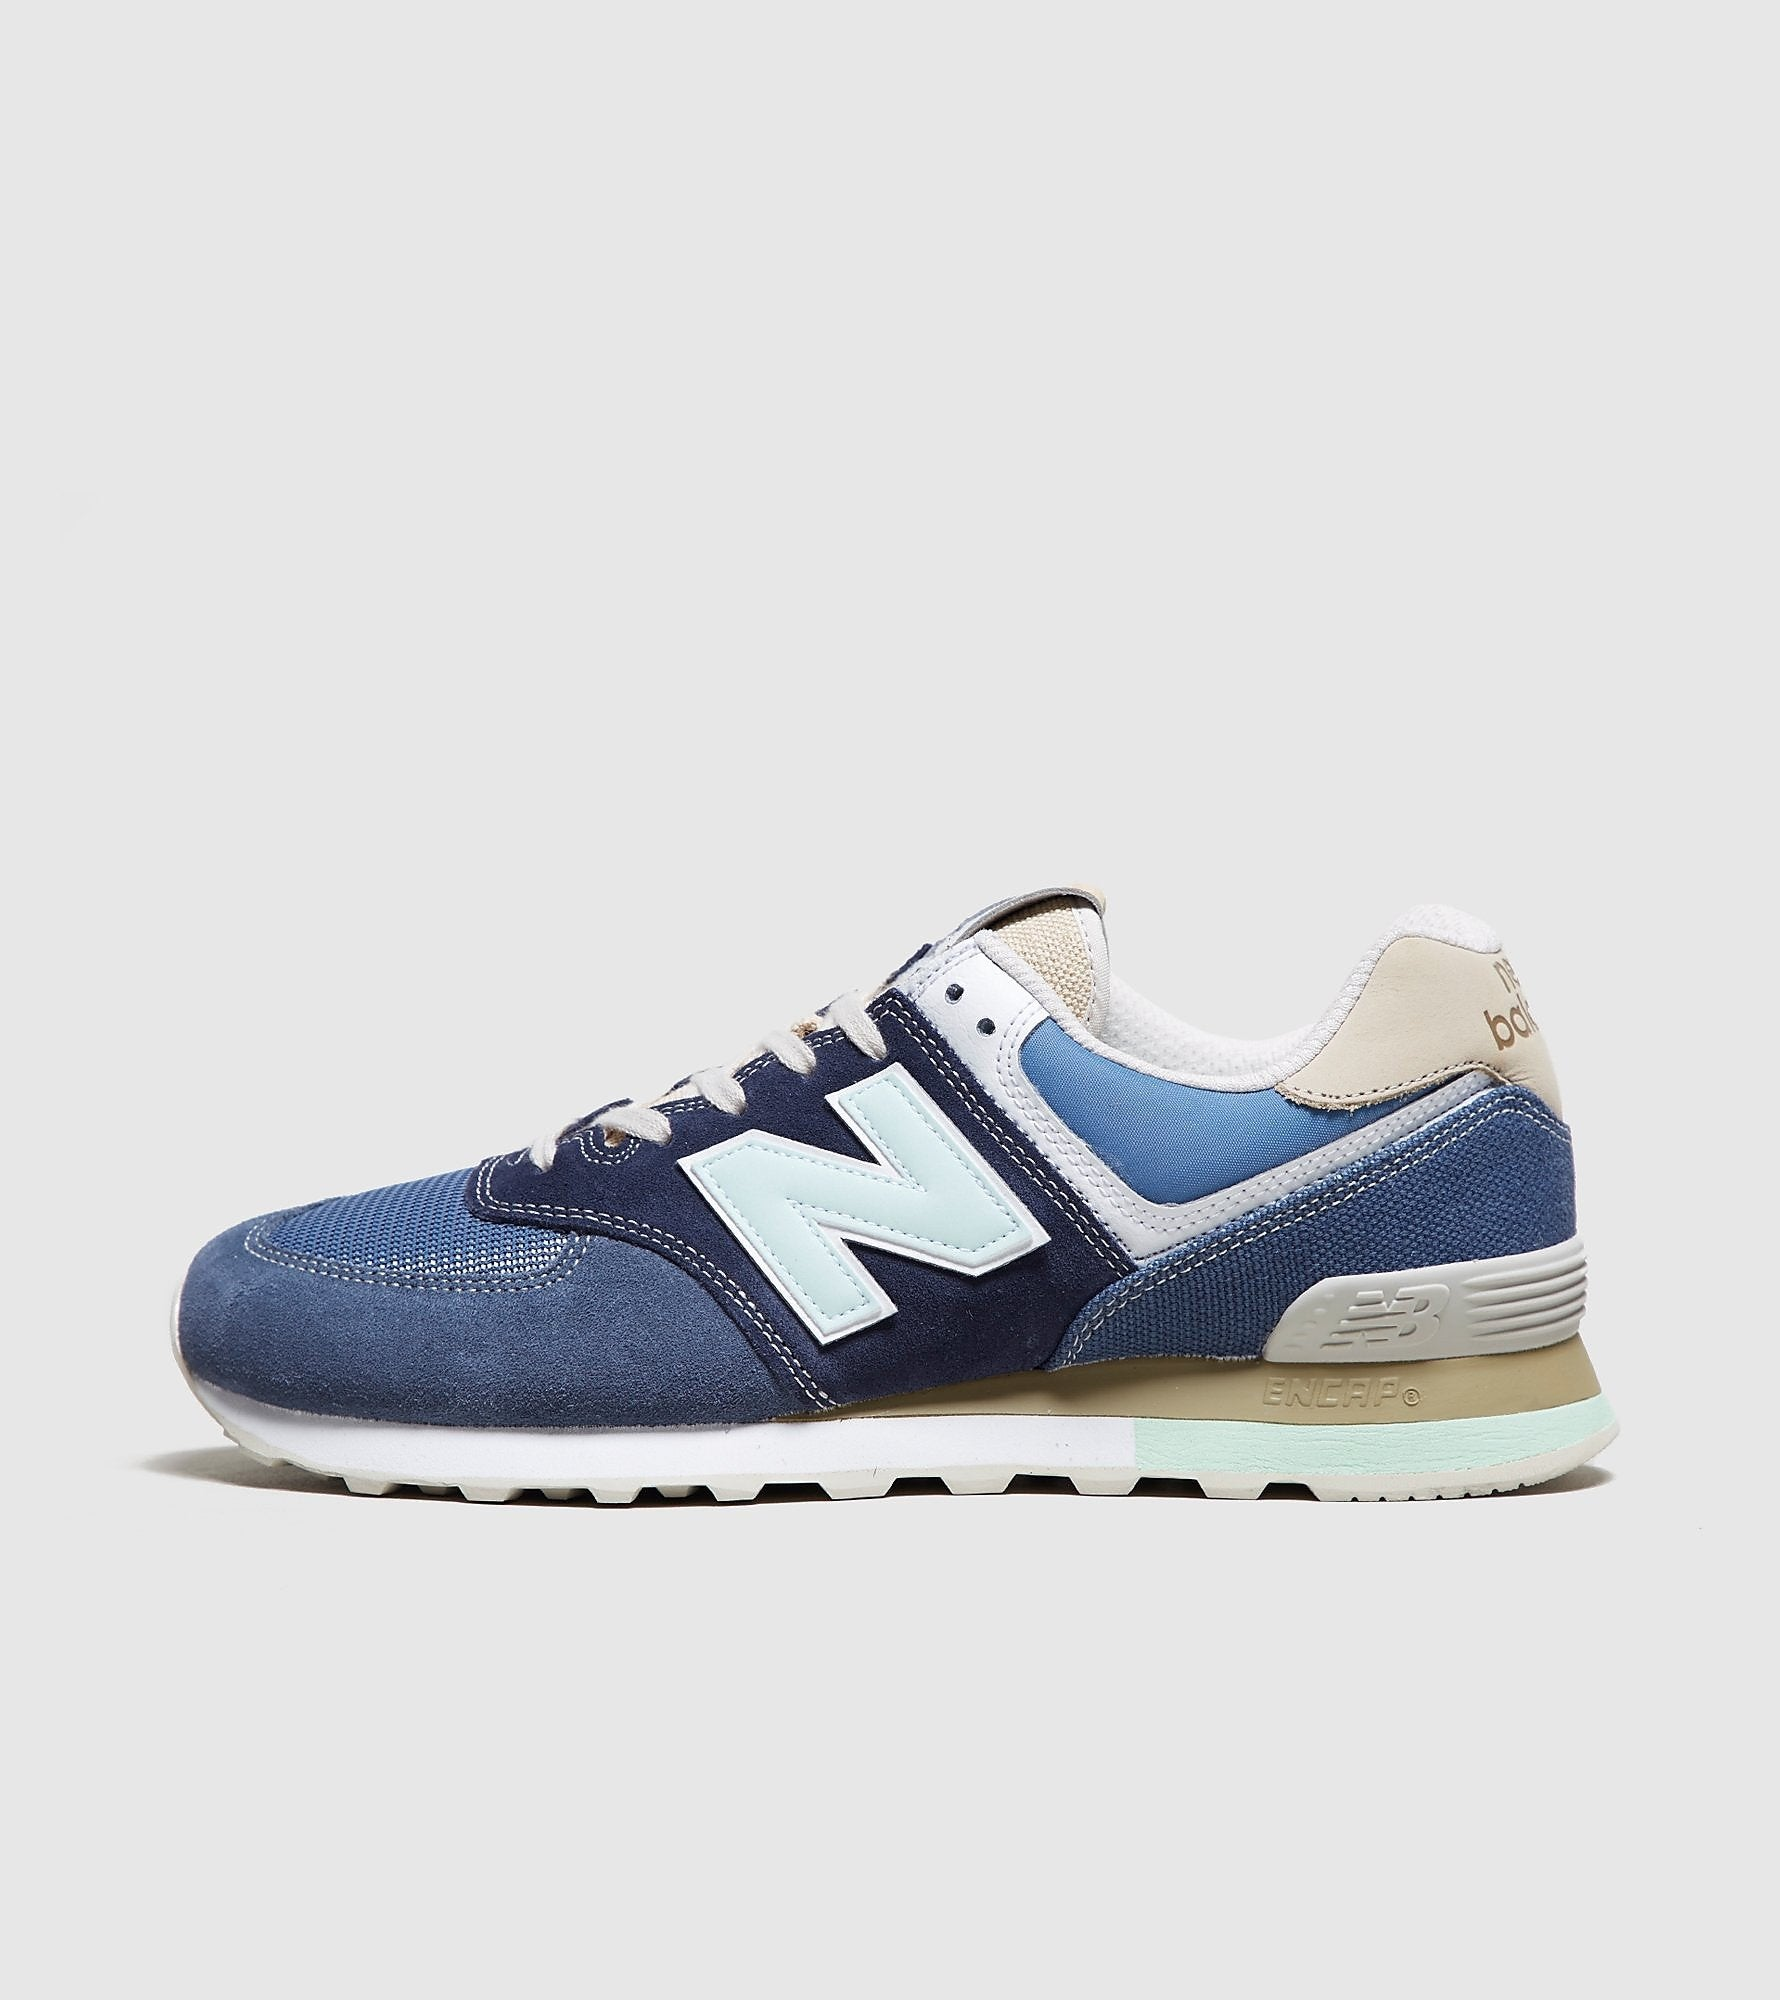 new concept 718c7 0c4fc New Balance New Balance 574, Blue/Grey at Soleheaven Curated Collections